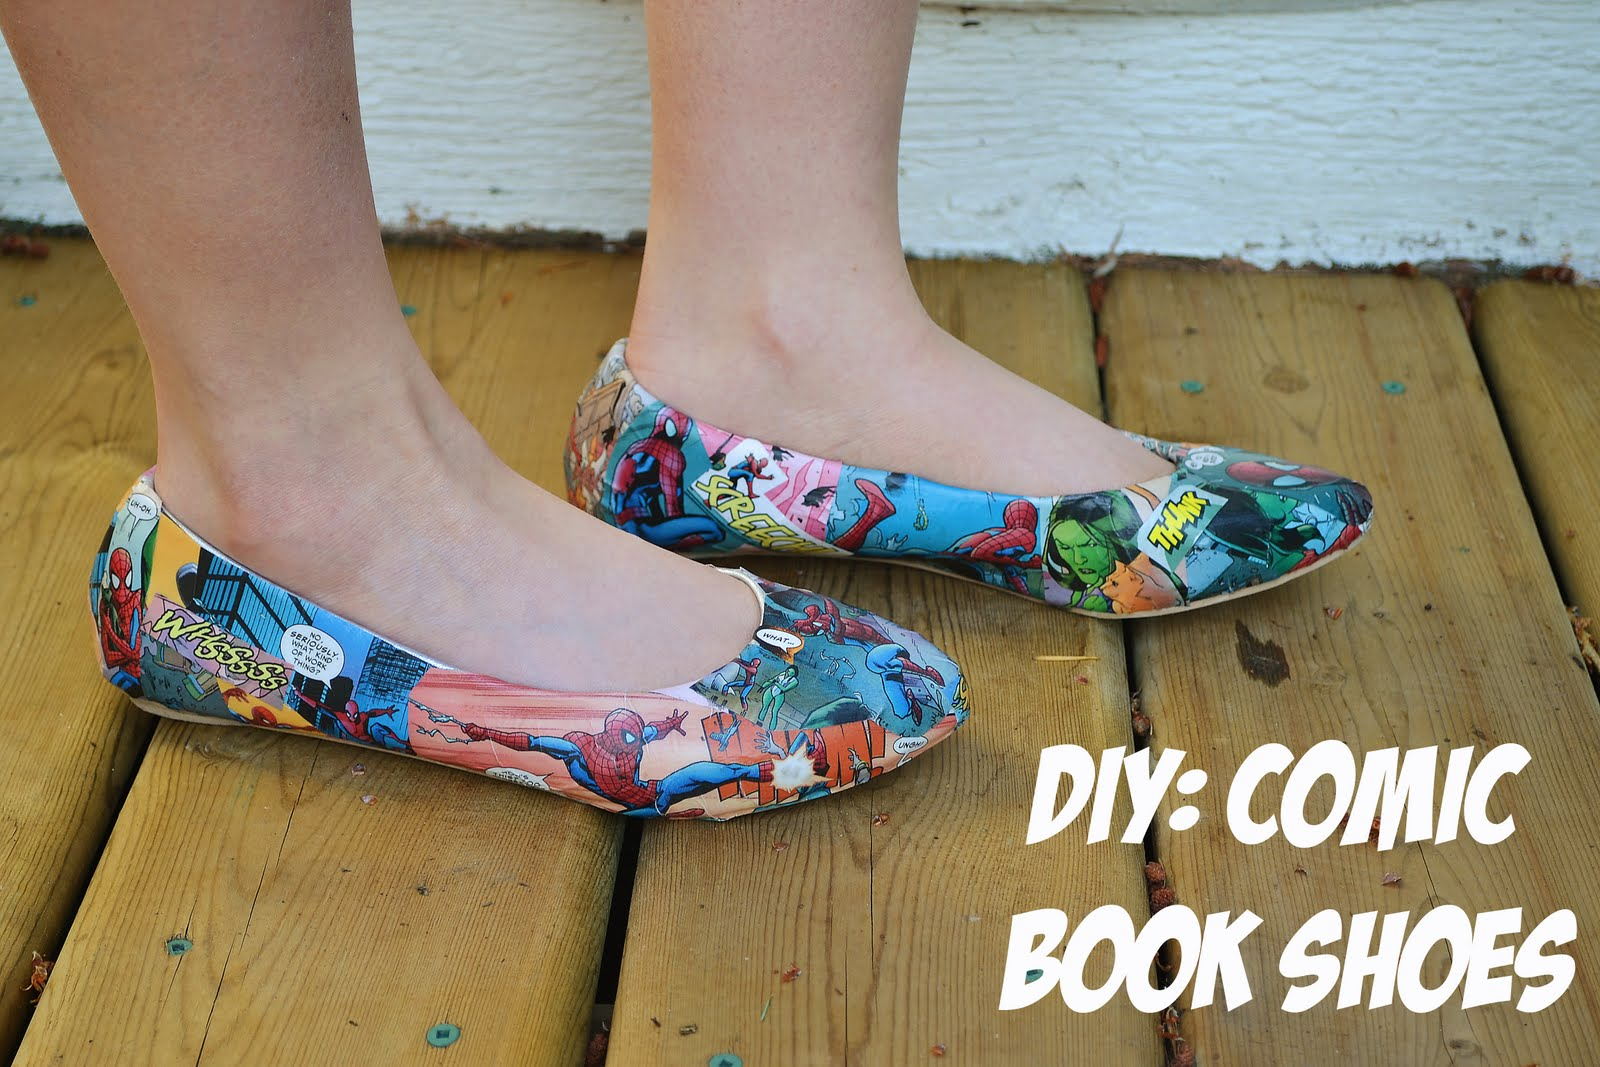 02884e1b067b p.s.♡  diy  comic book shoes